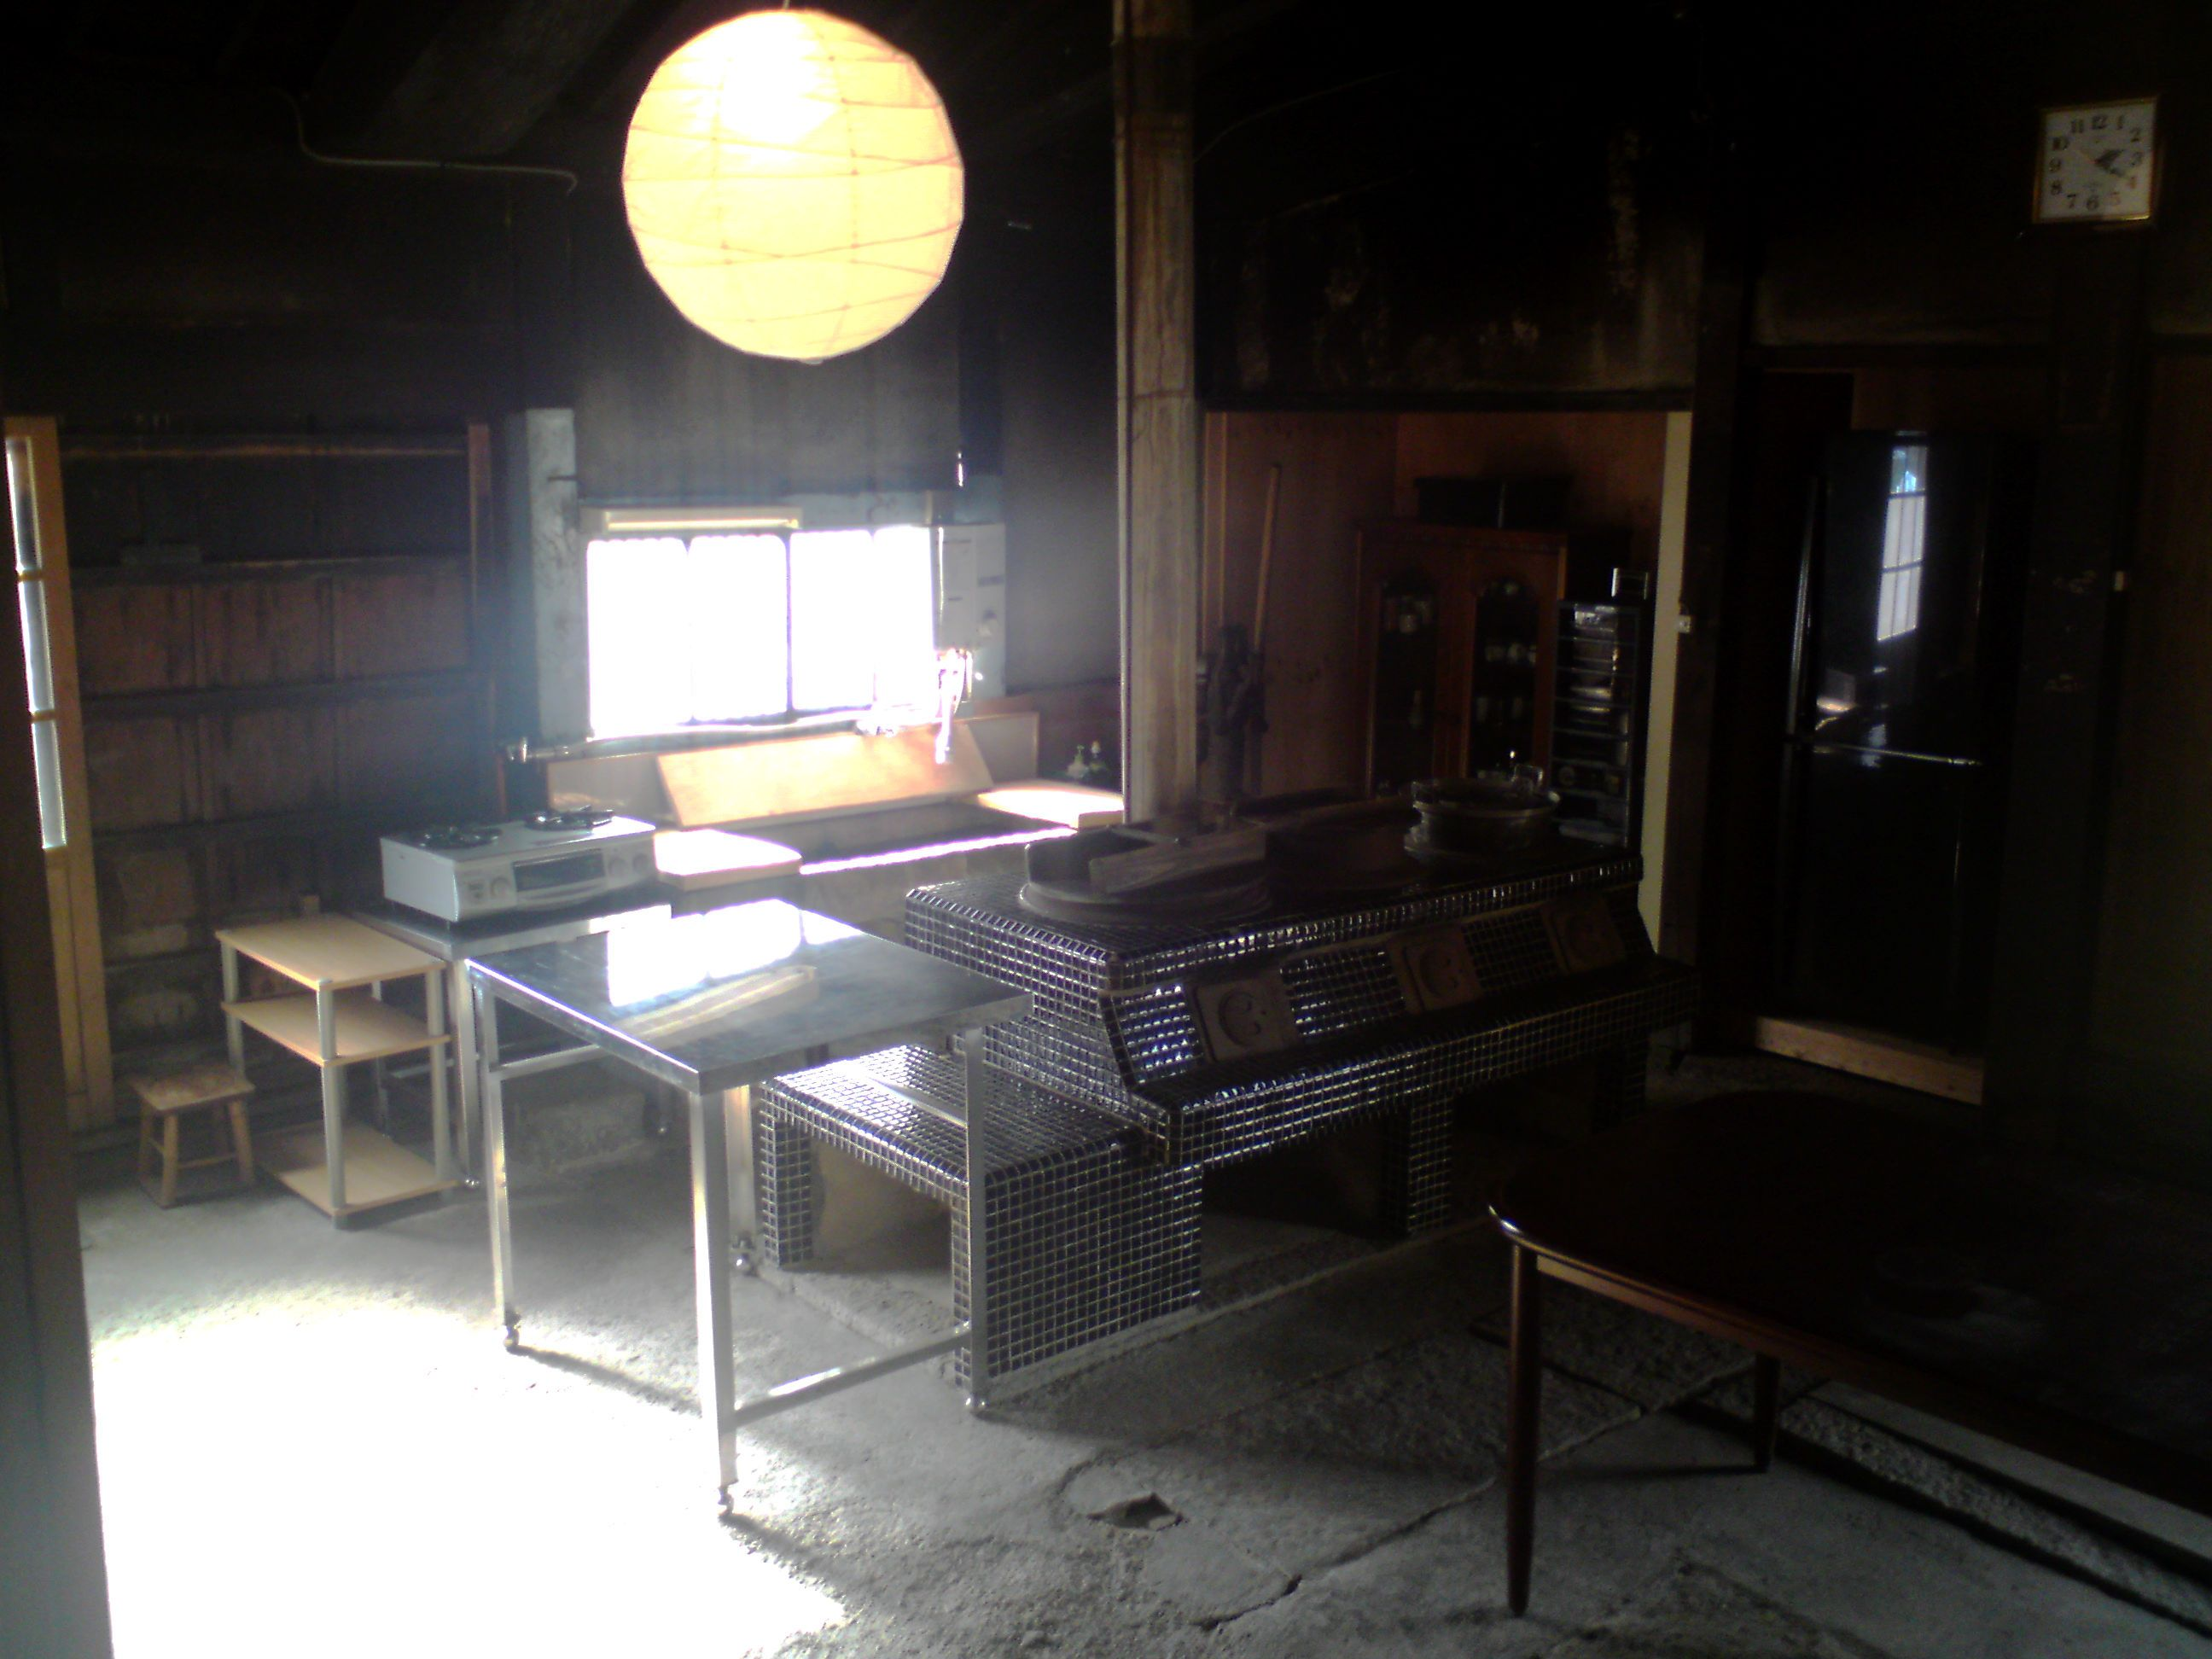 japanese kitchen with images home decor japanese kitchen interior on kitchen interior japan id=64484